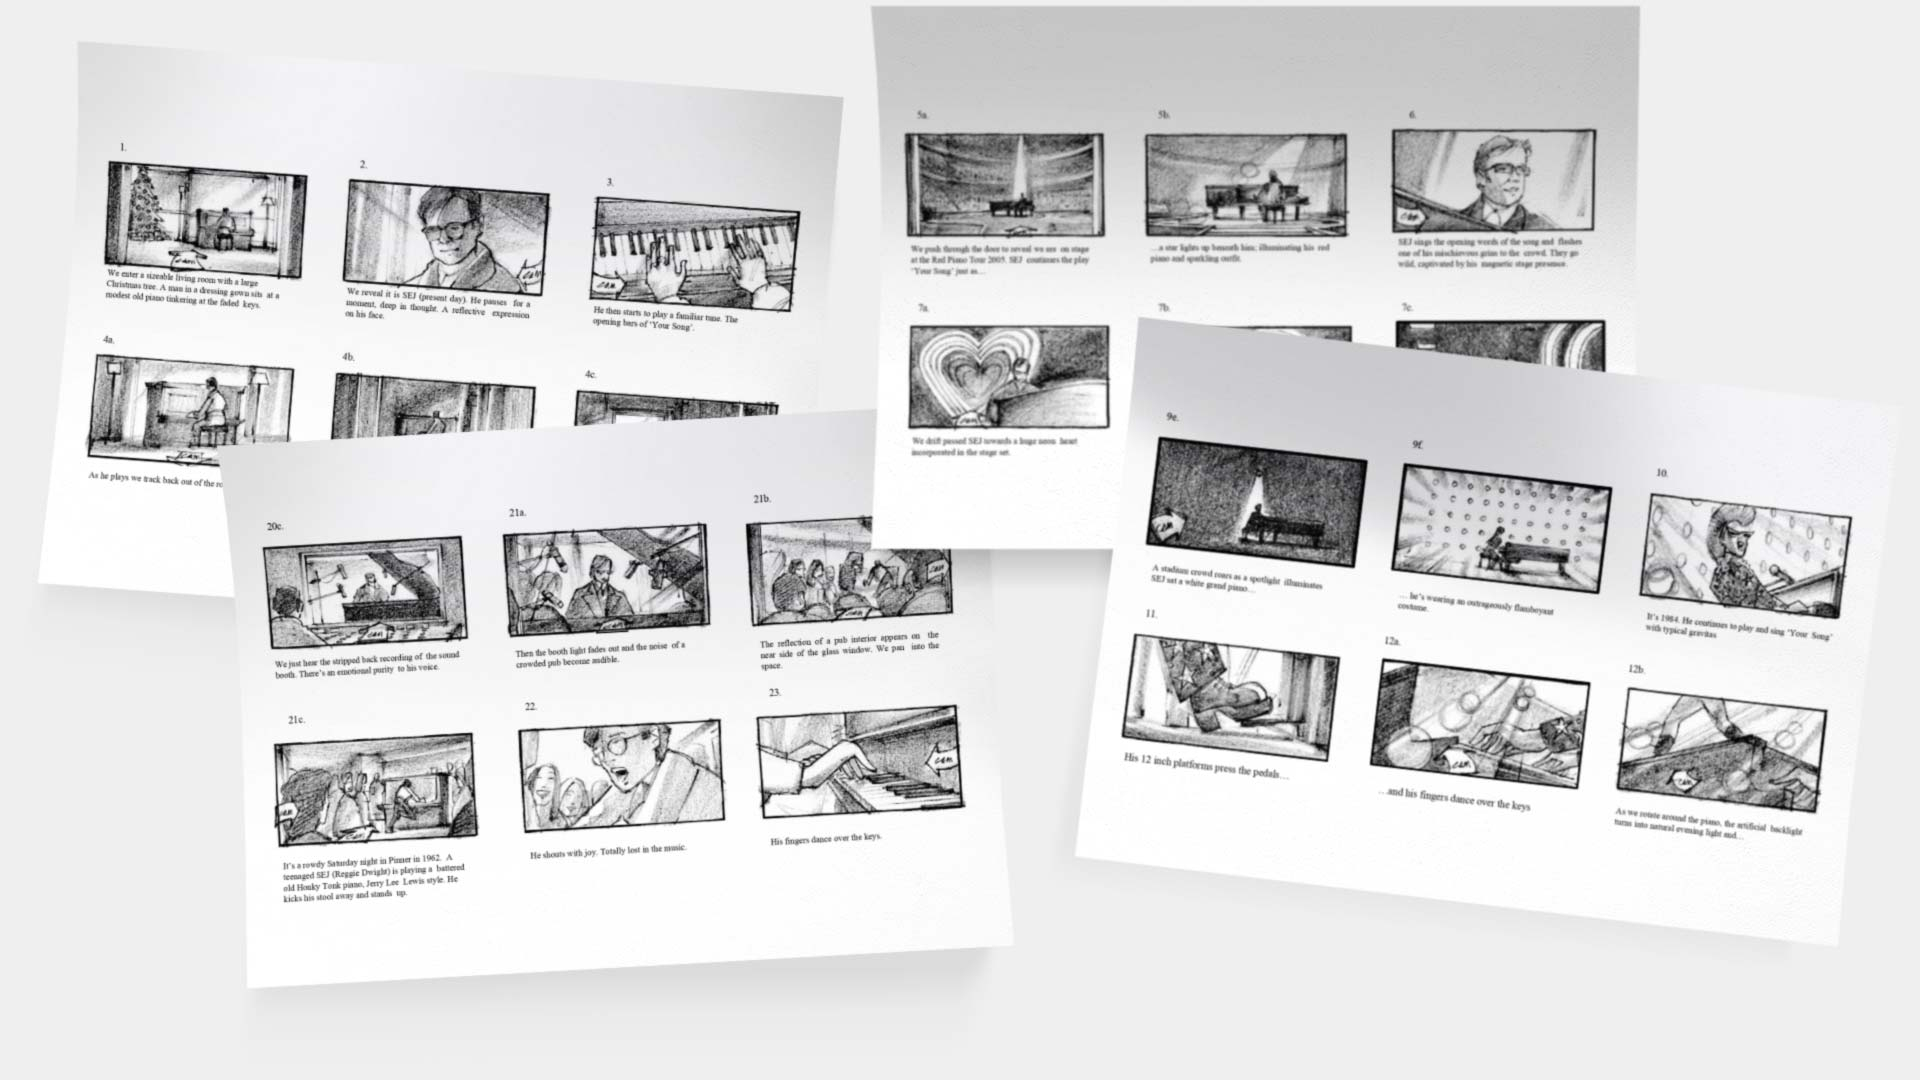 Sheets of paper showing sketched storyboard ideas for the advert